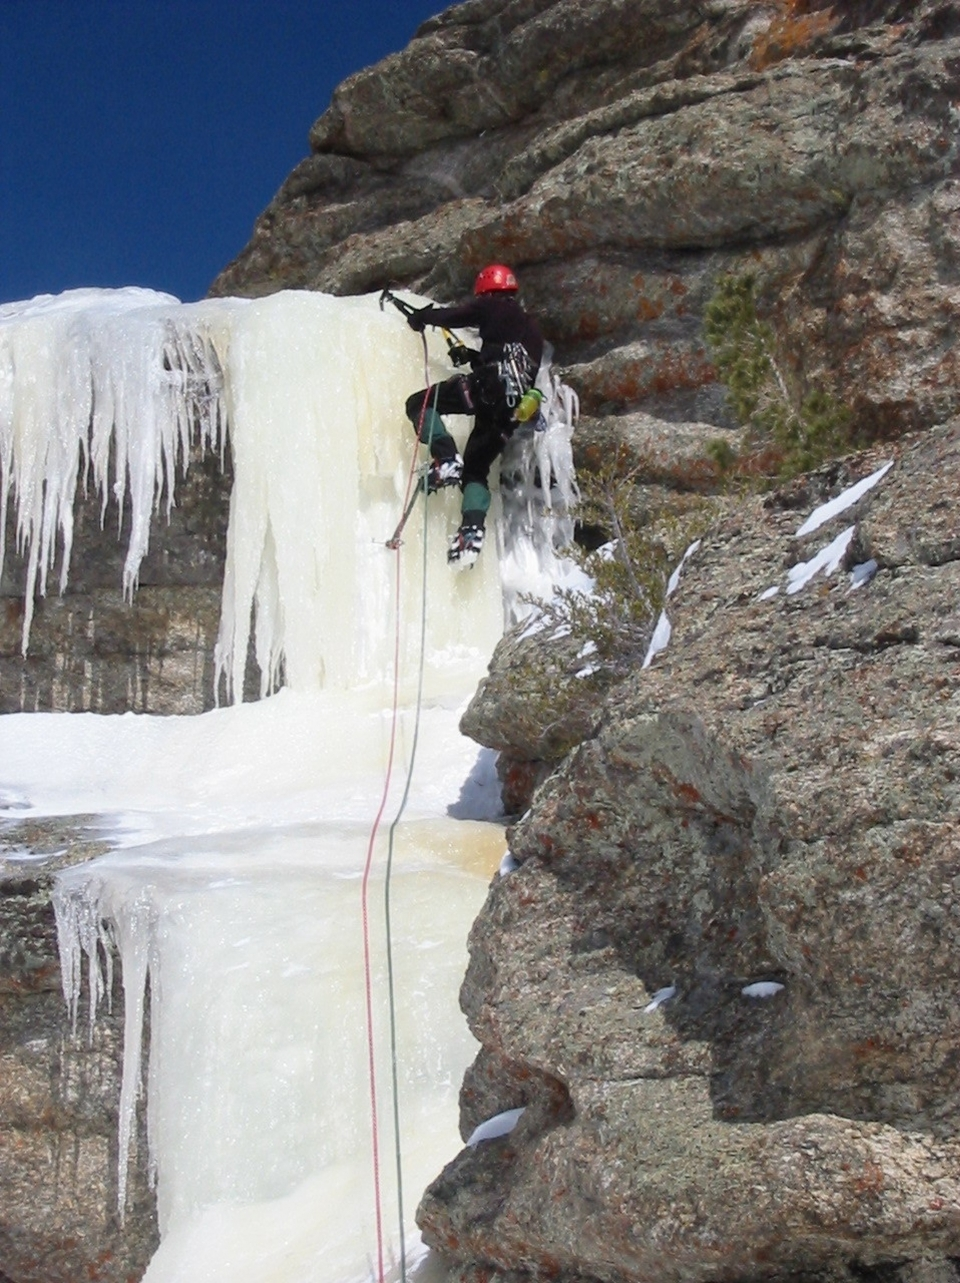 A person leading up ice on double ropes on at City of Rocks National Reserve